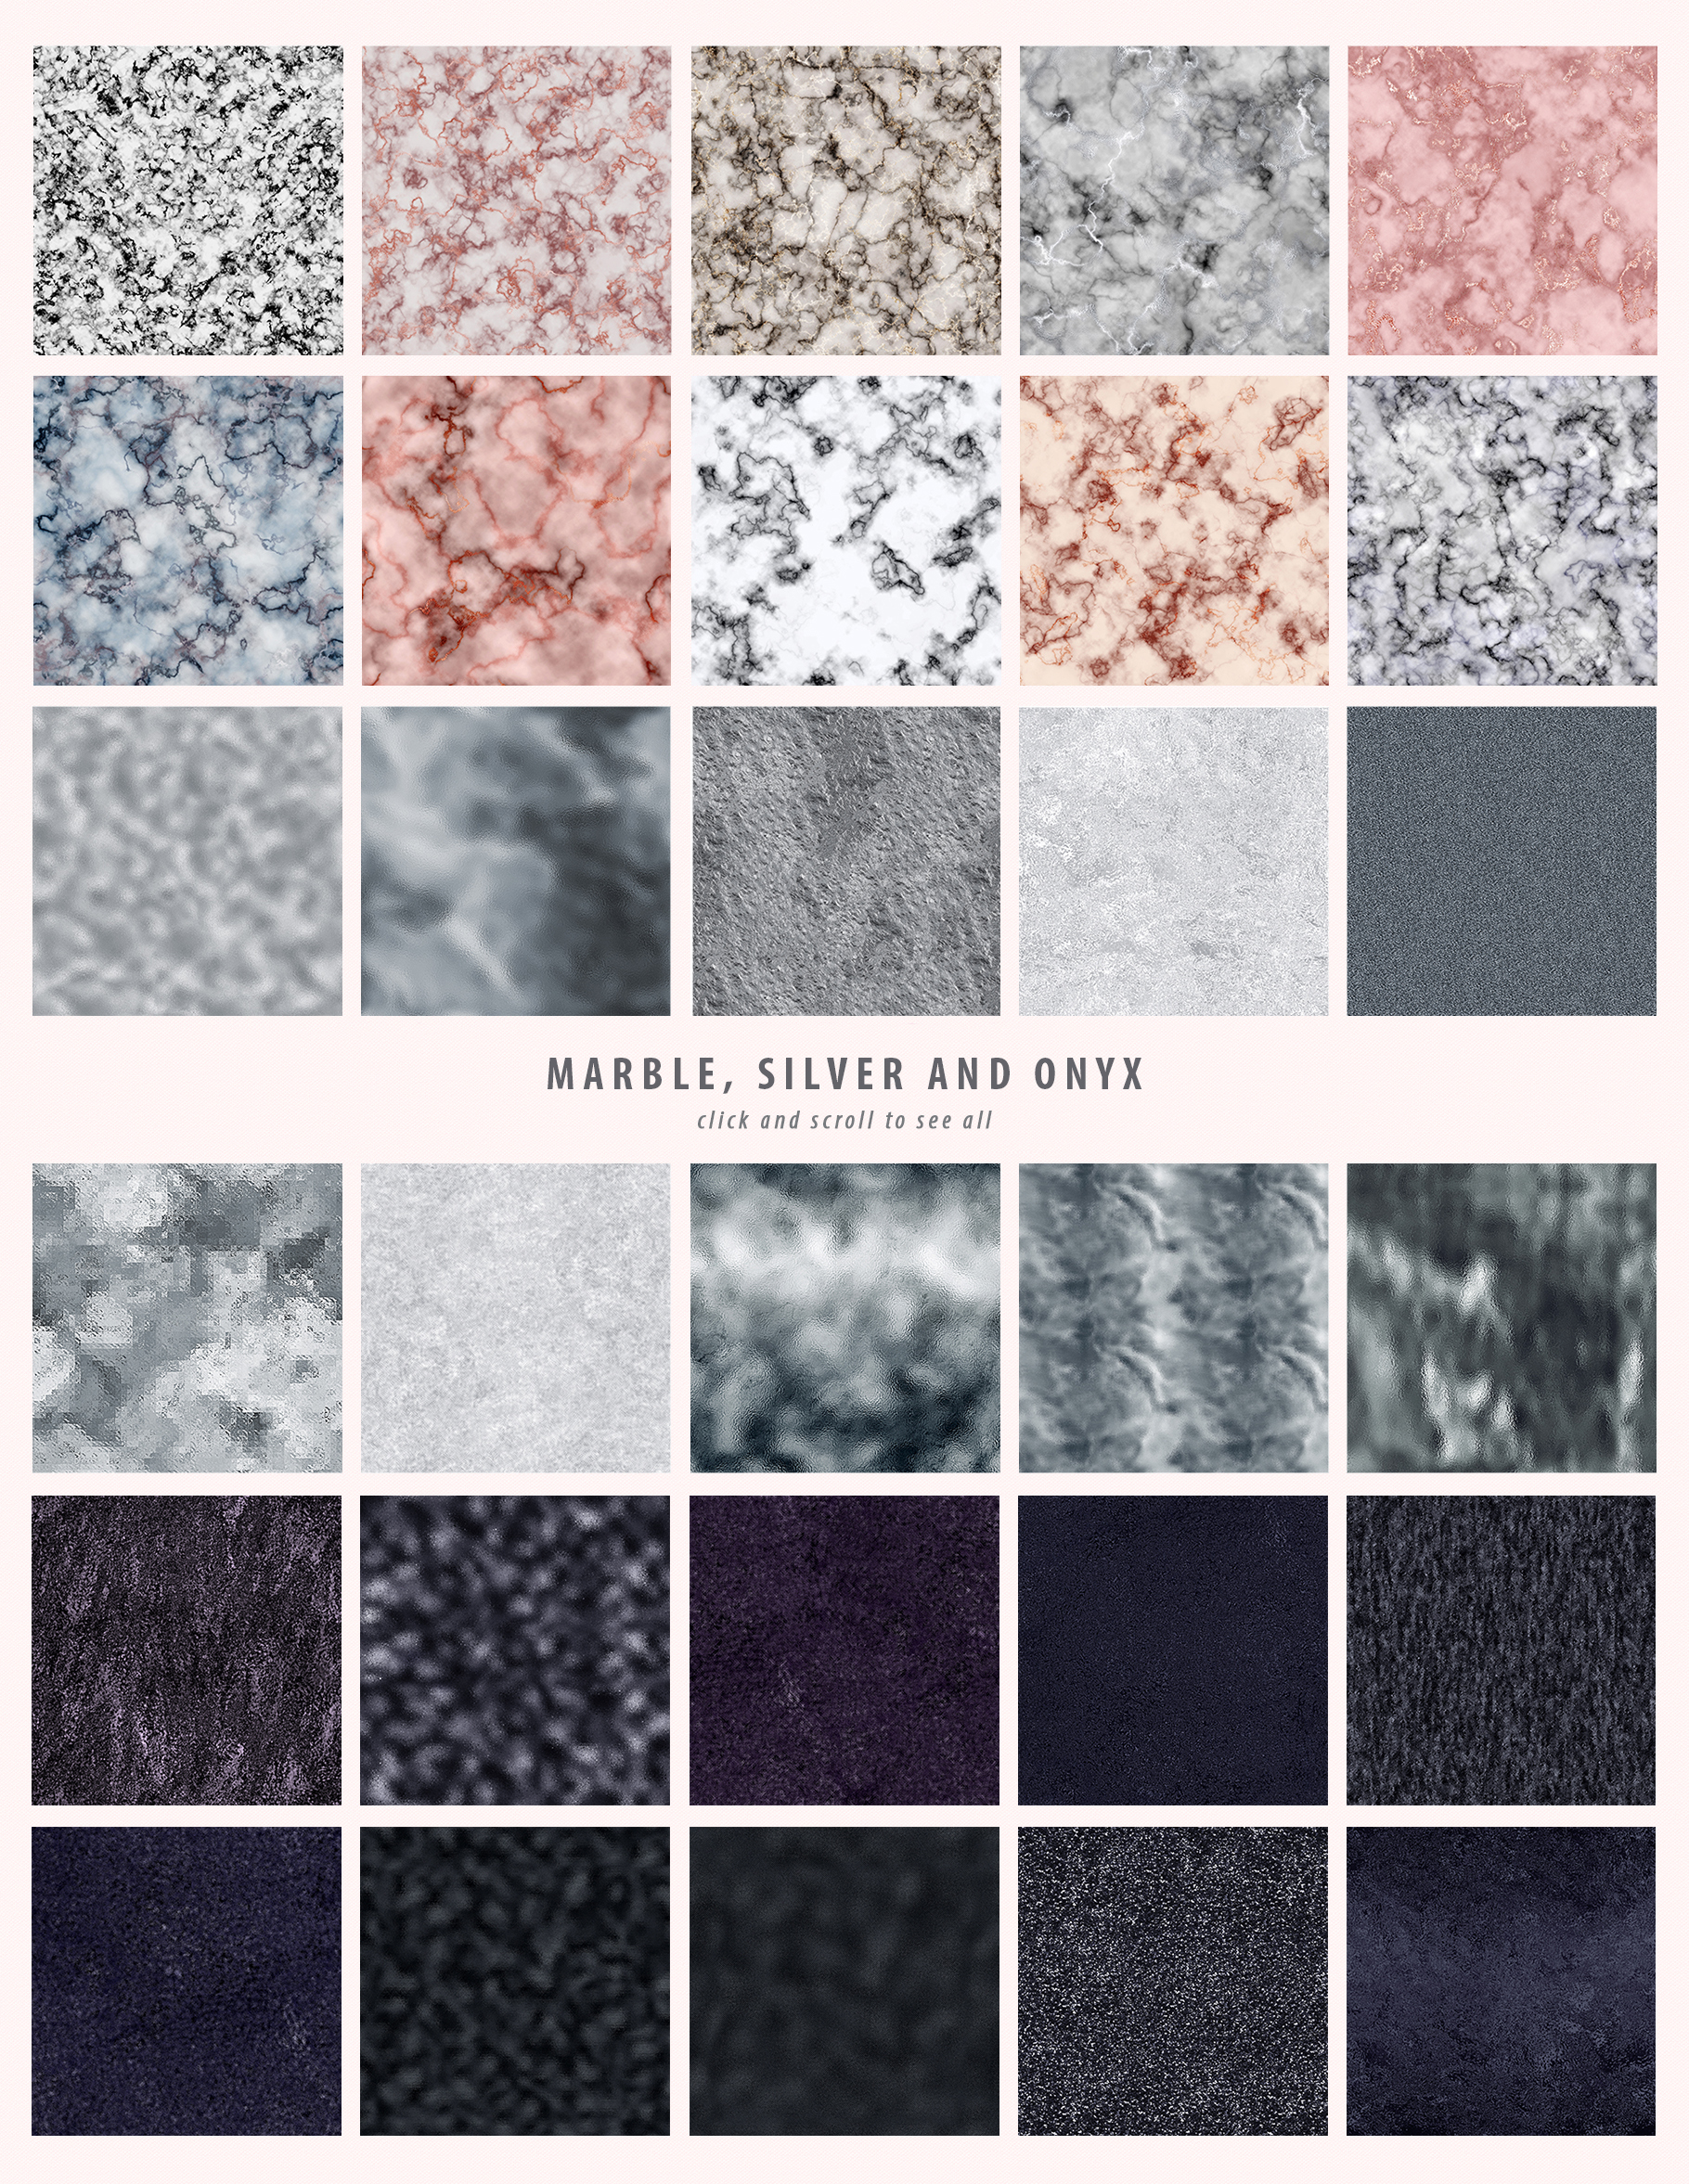 Luxe - 200 Textures and Patterns - Foil, Glitter, Marble example image 23